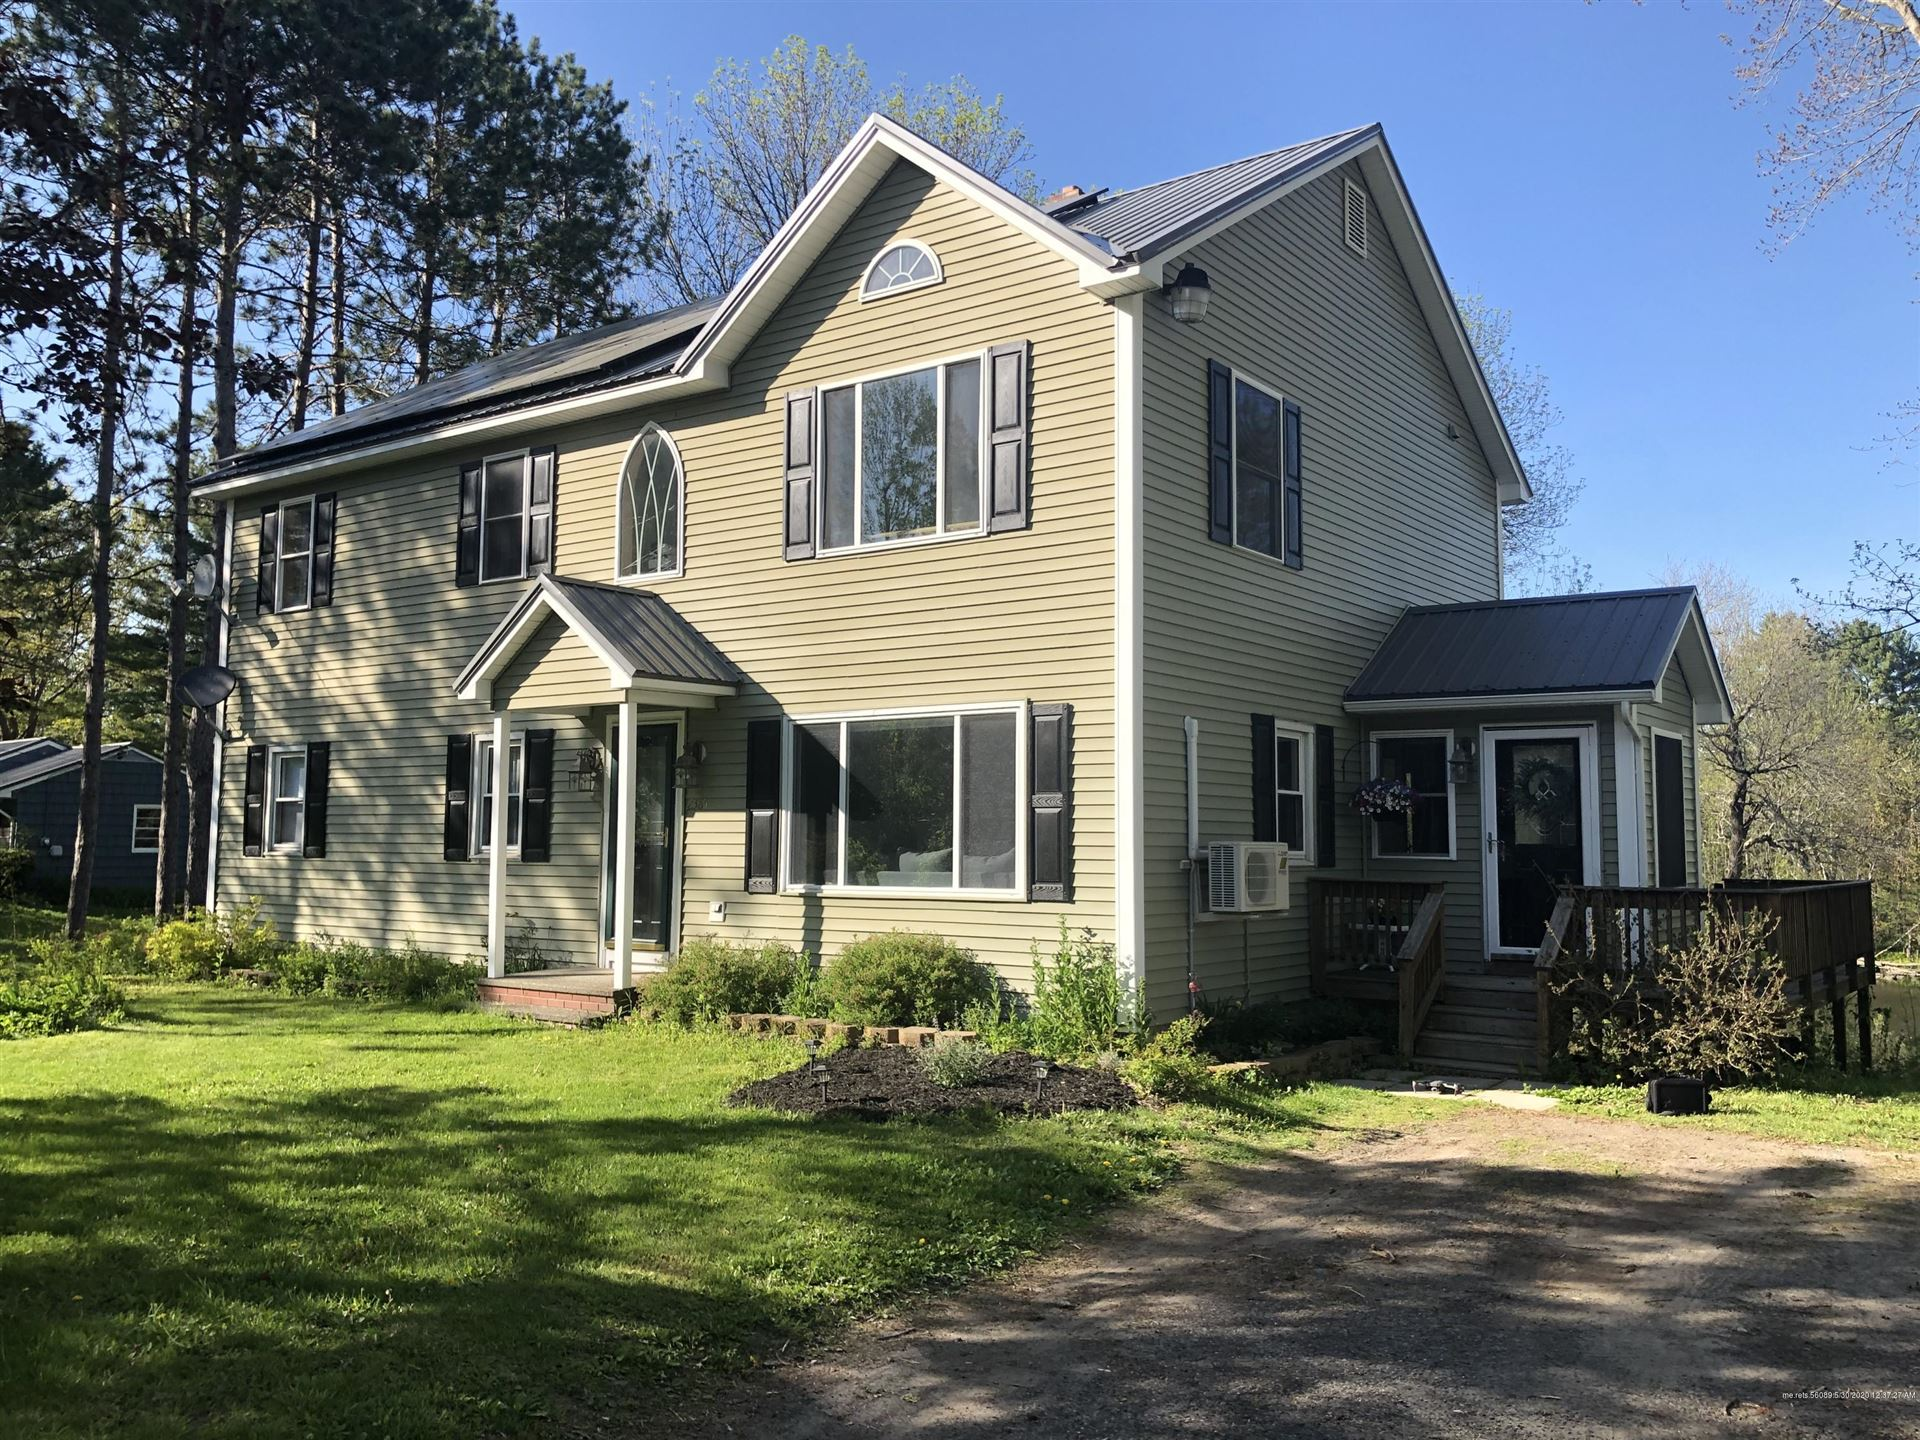 Photo of 2385 Broadway, Bangor, ME 04401 (MLS # 1454166)